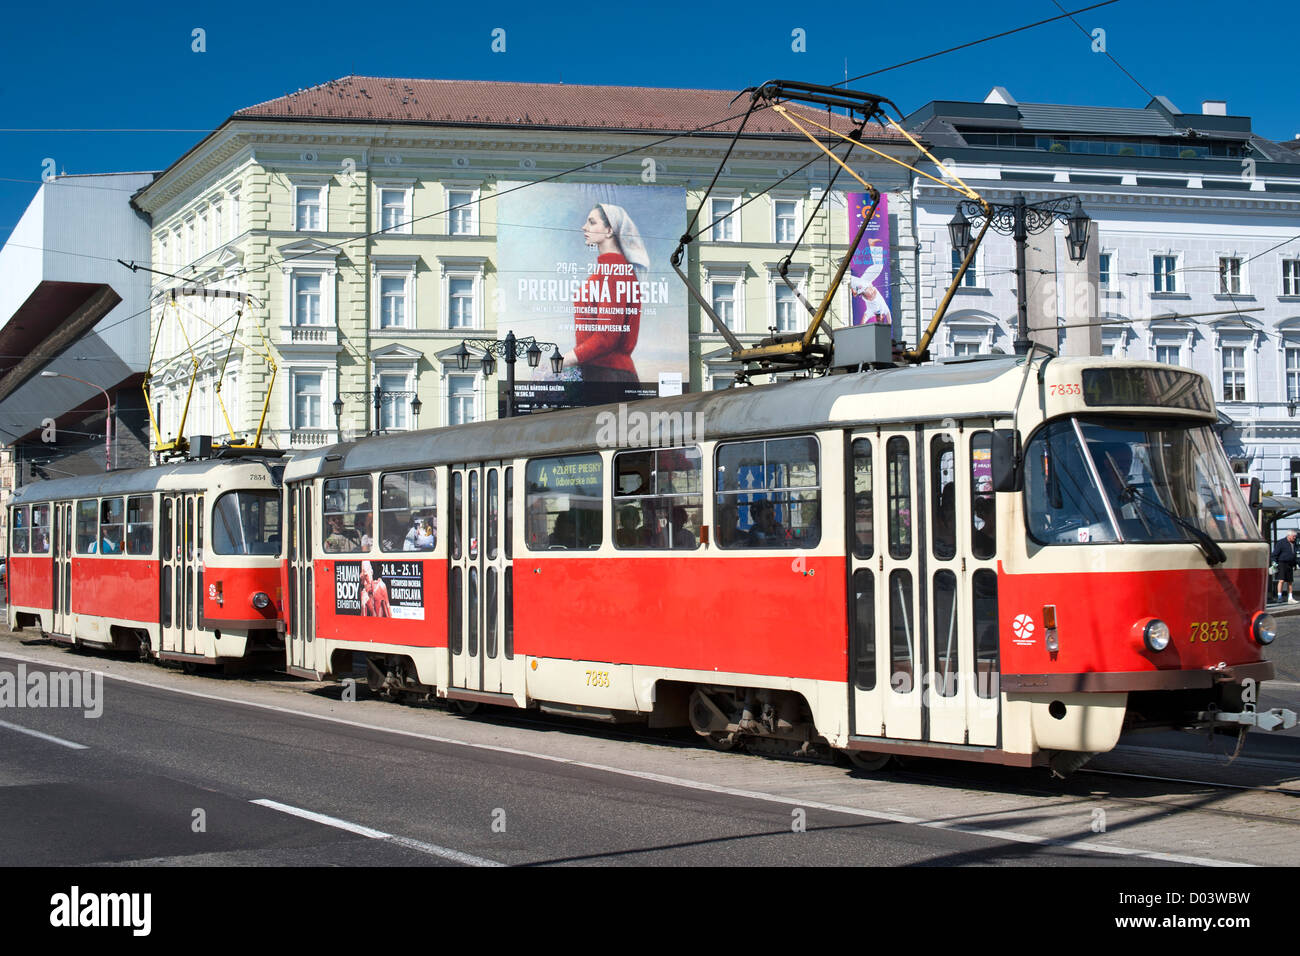 Tram in the streets of Bratislava, the capital of Slovakia. - Stock Image